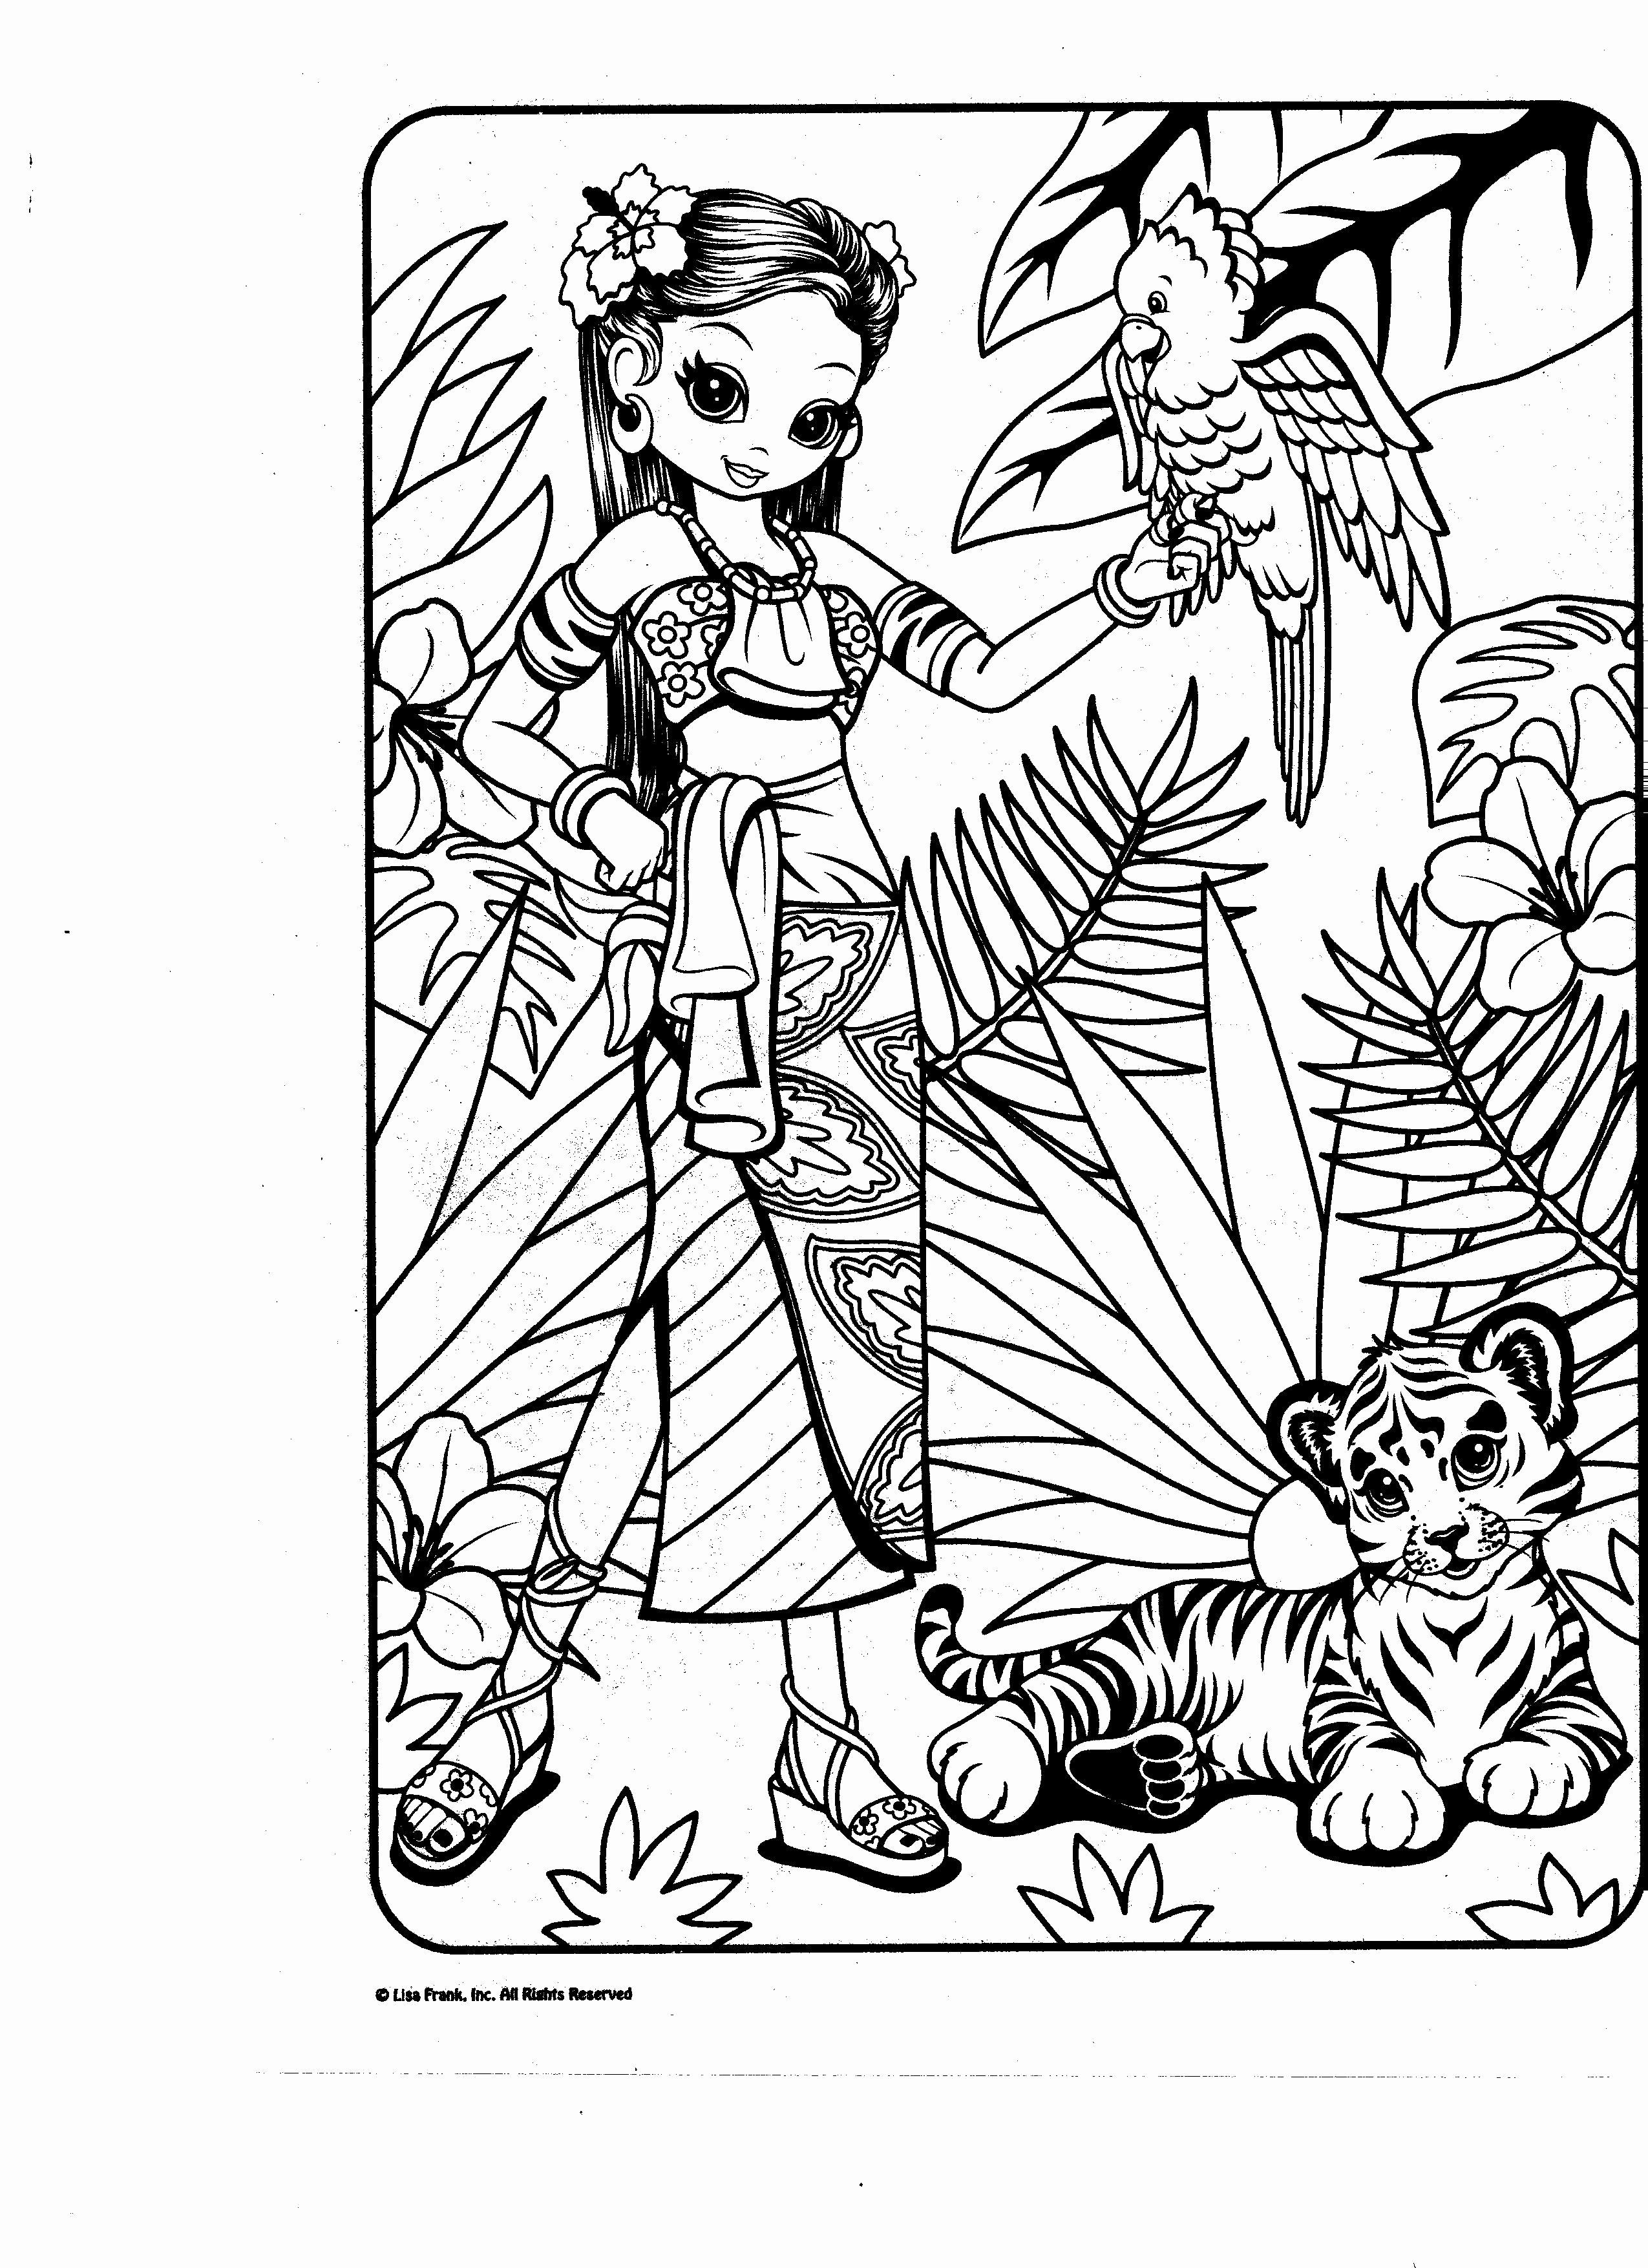 Pin By Maya Van On Horse Coloring Pages Horse Coloring Pages Lisa Frank Coloring Books Animal Coloring Pages